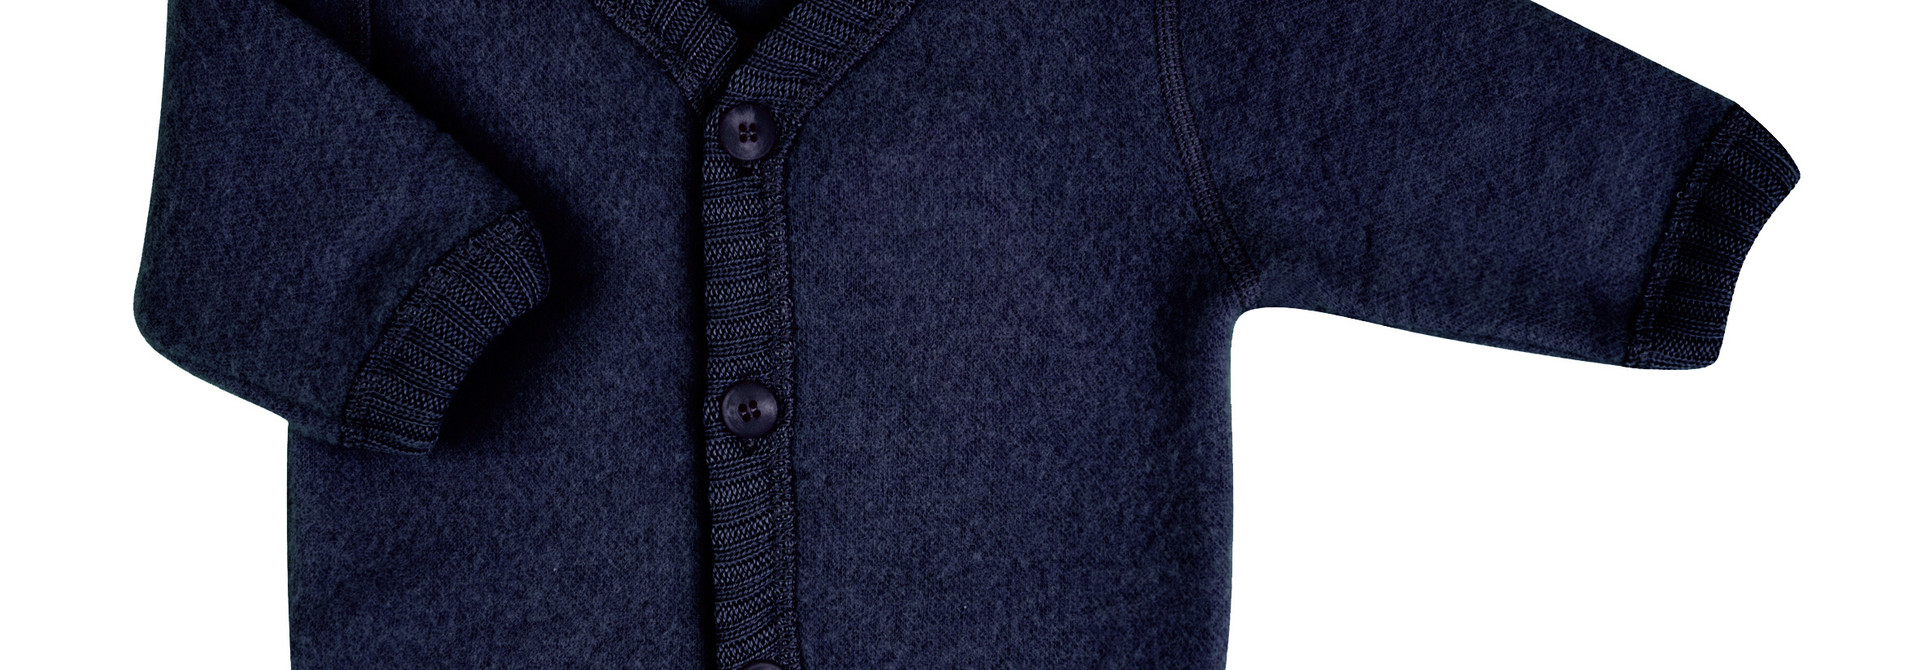 Vest with buttons - wool-fleece